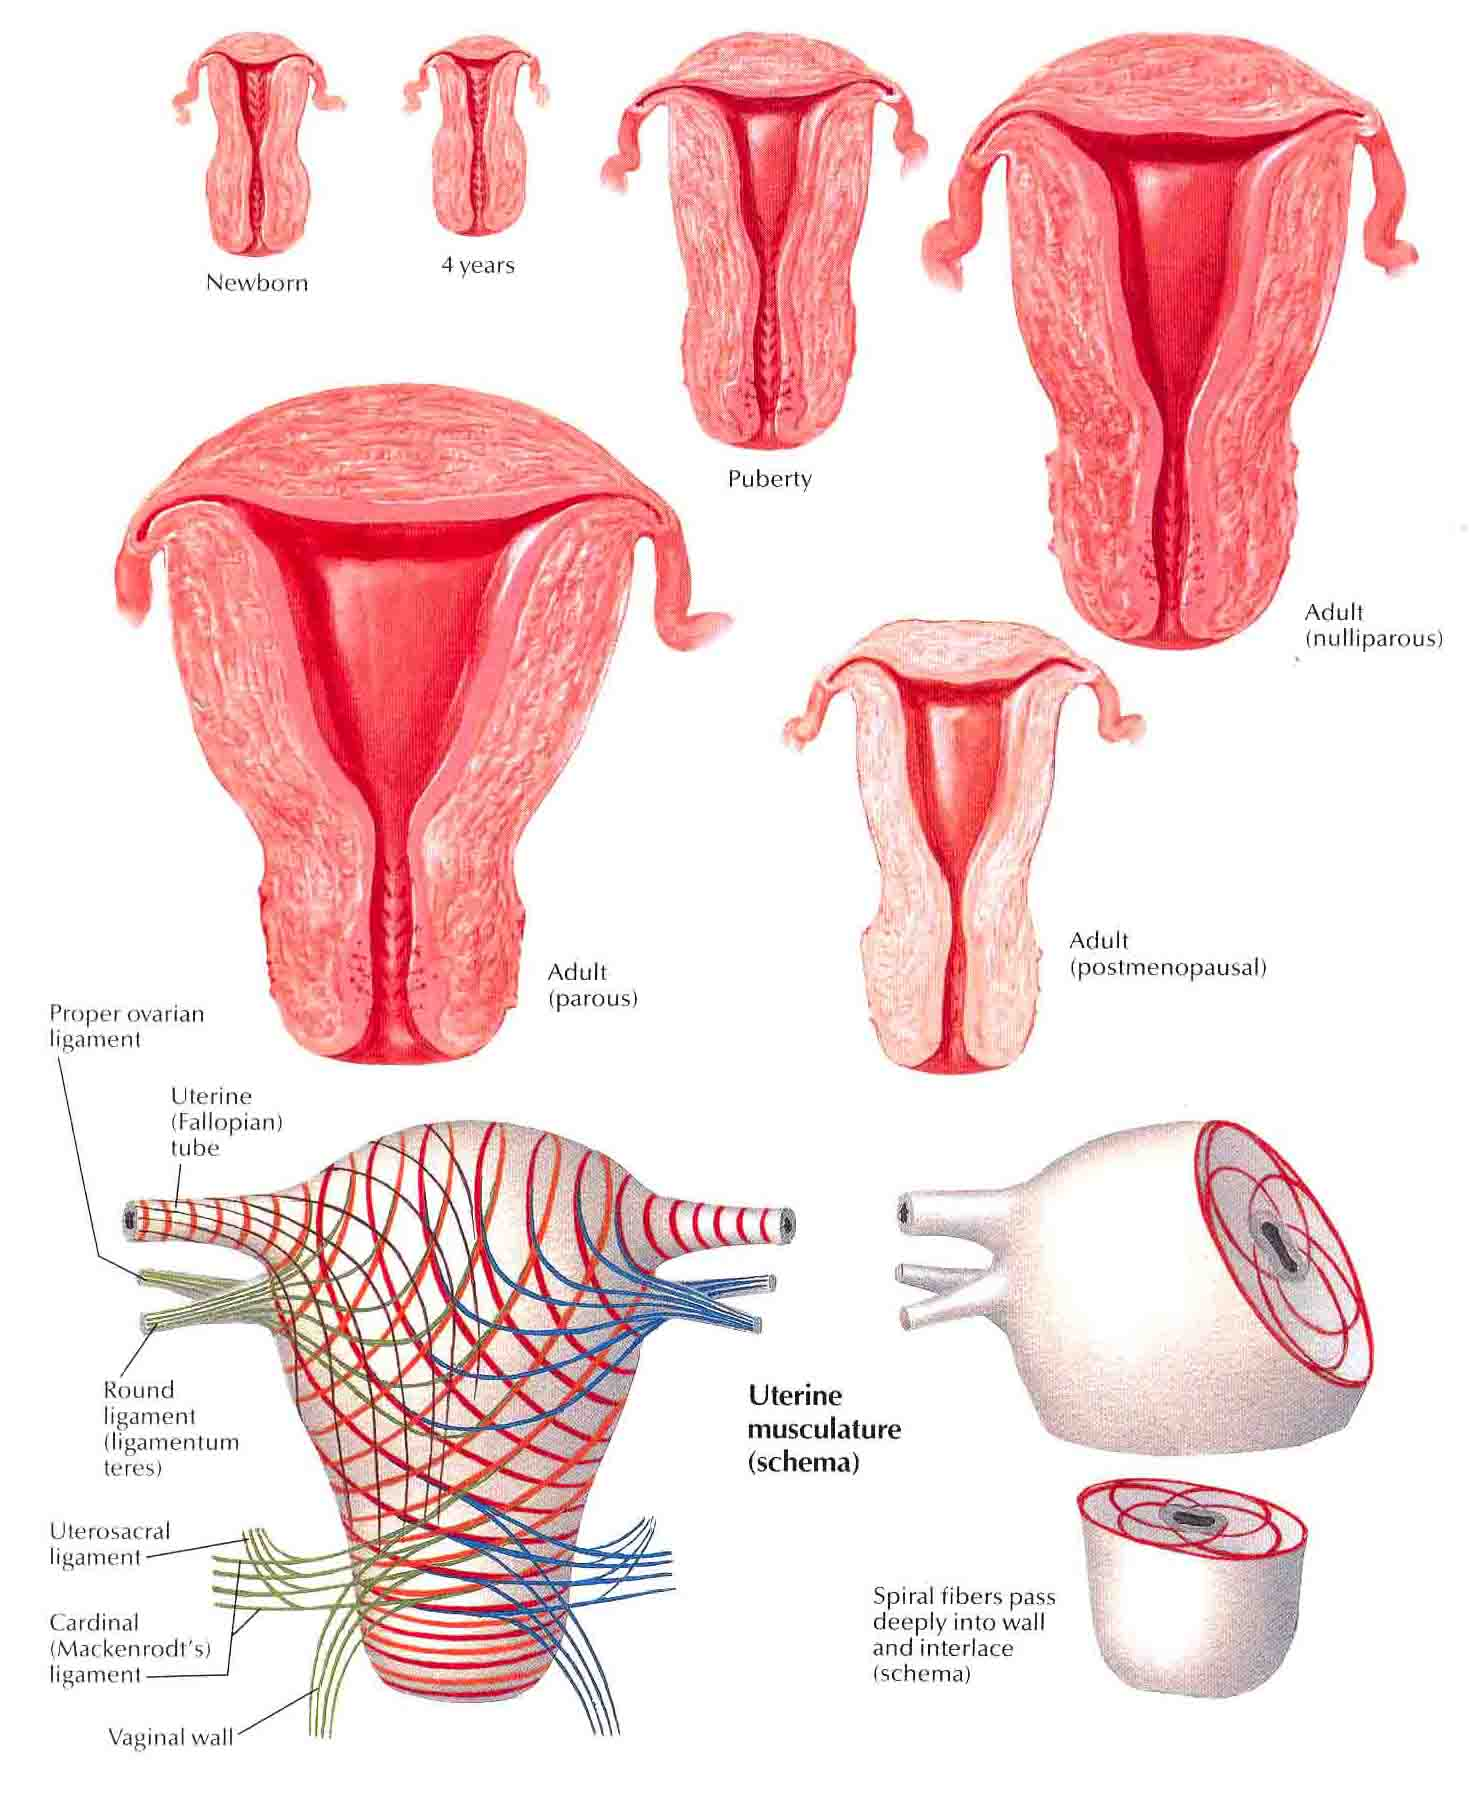 uterus-age-changes-and-muscle-pattern Top 10 Strongest Muscles in The Body